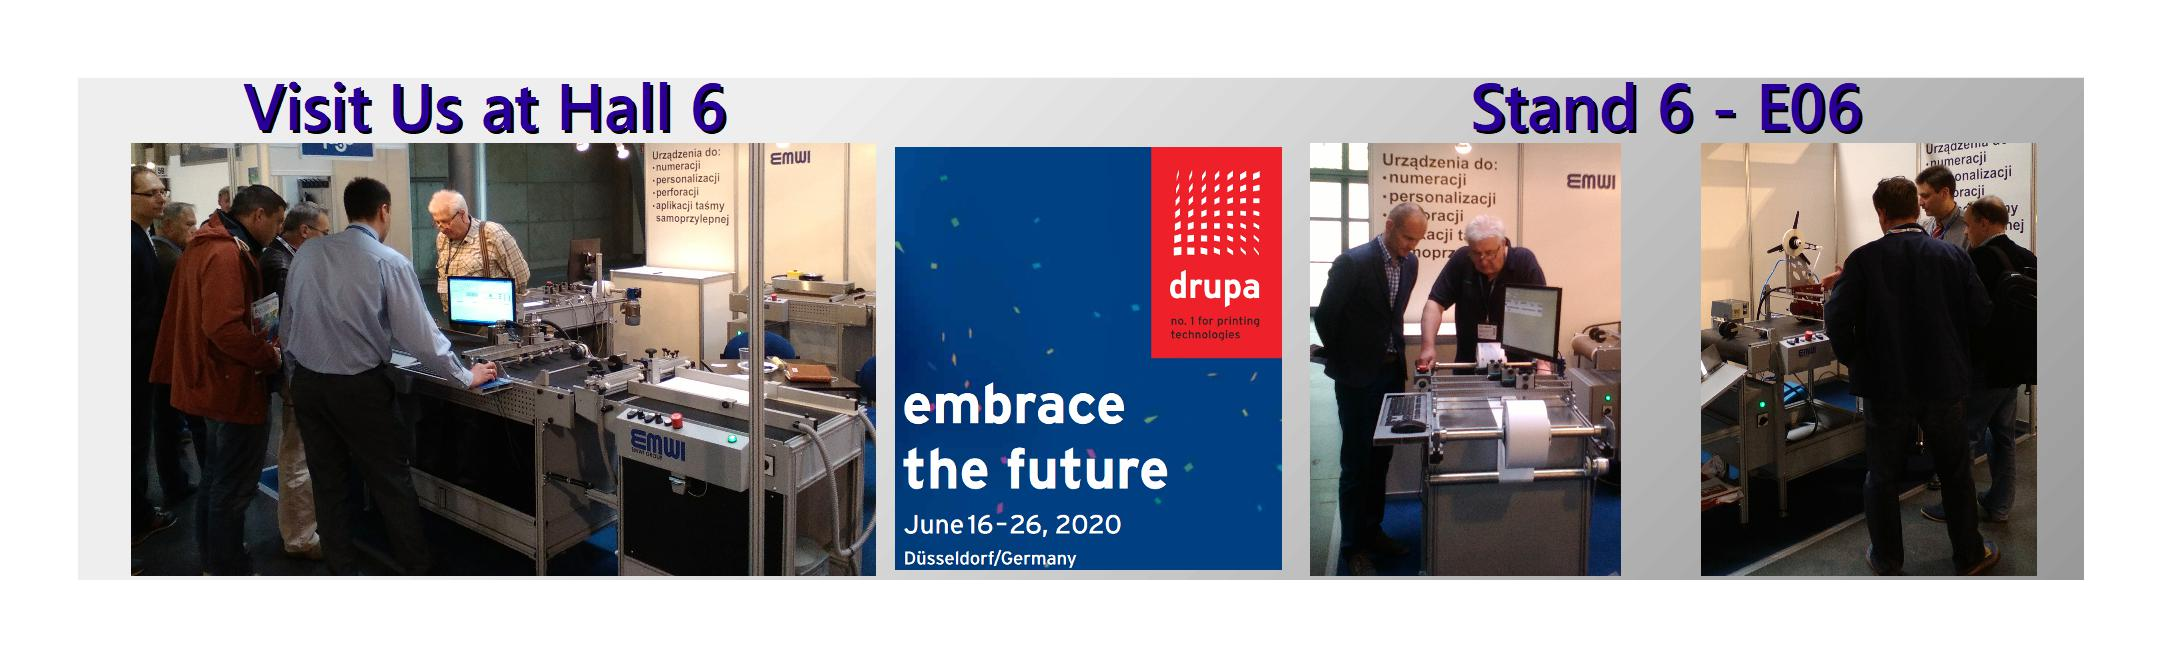 Drupa 2020 Emwi Group Hall 6 Stand 6E06